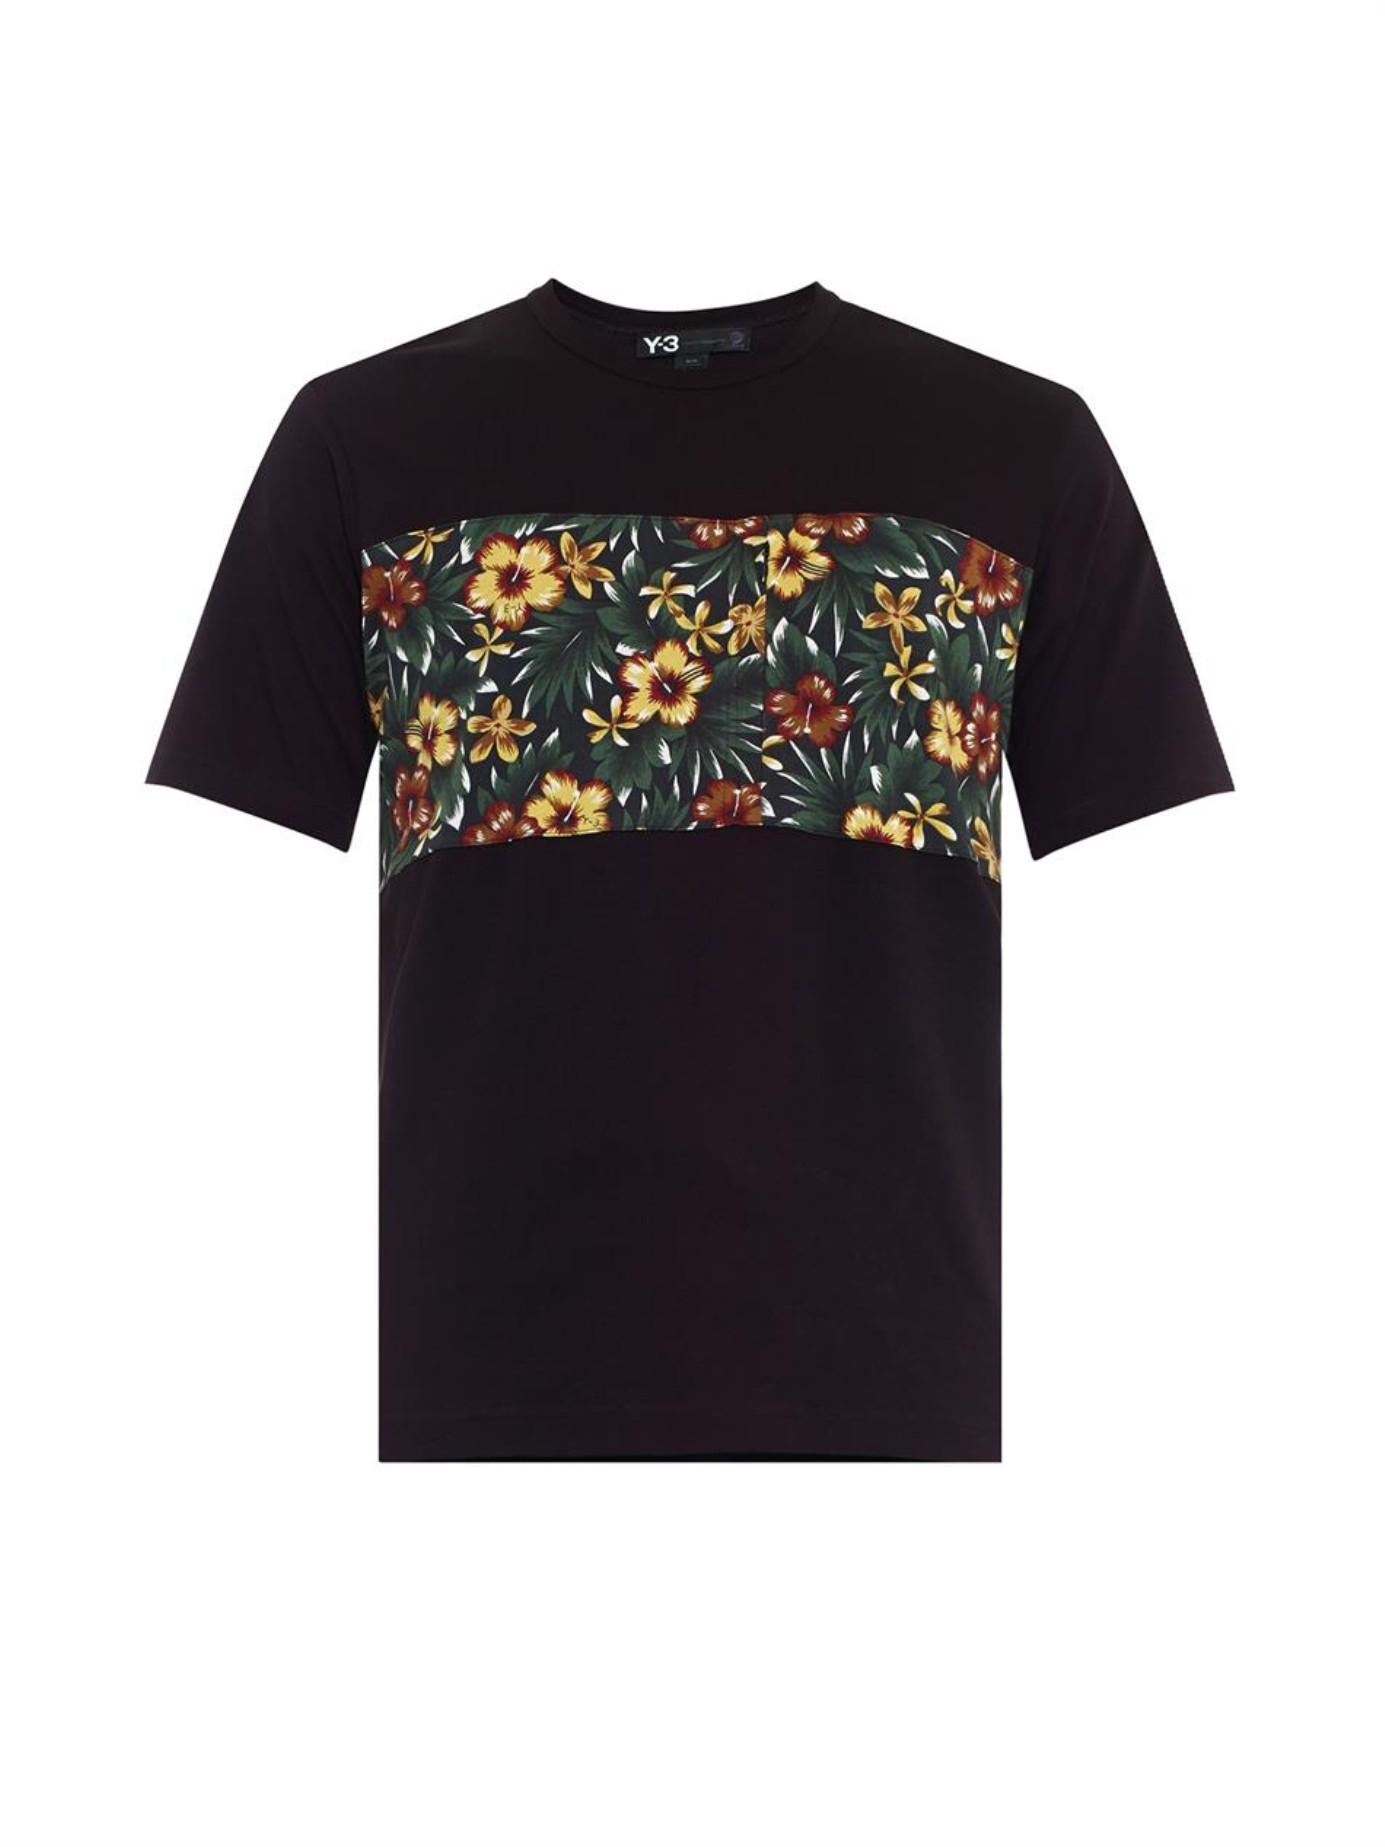 cd9a9df1e58e Lyst - Y-3 Aloha Floral-Print T-Shirt in Black for Men